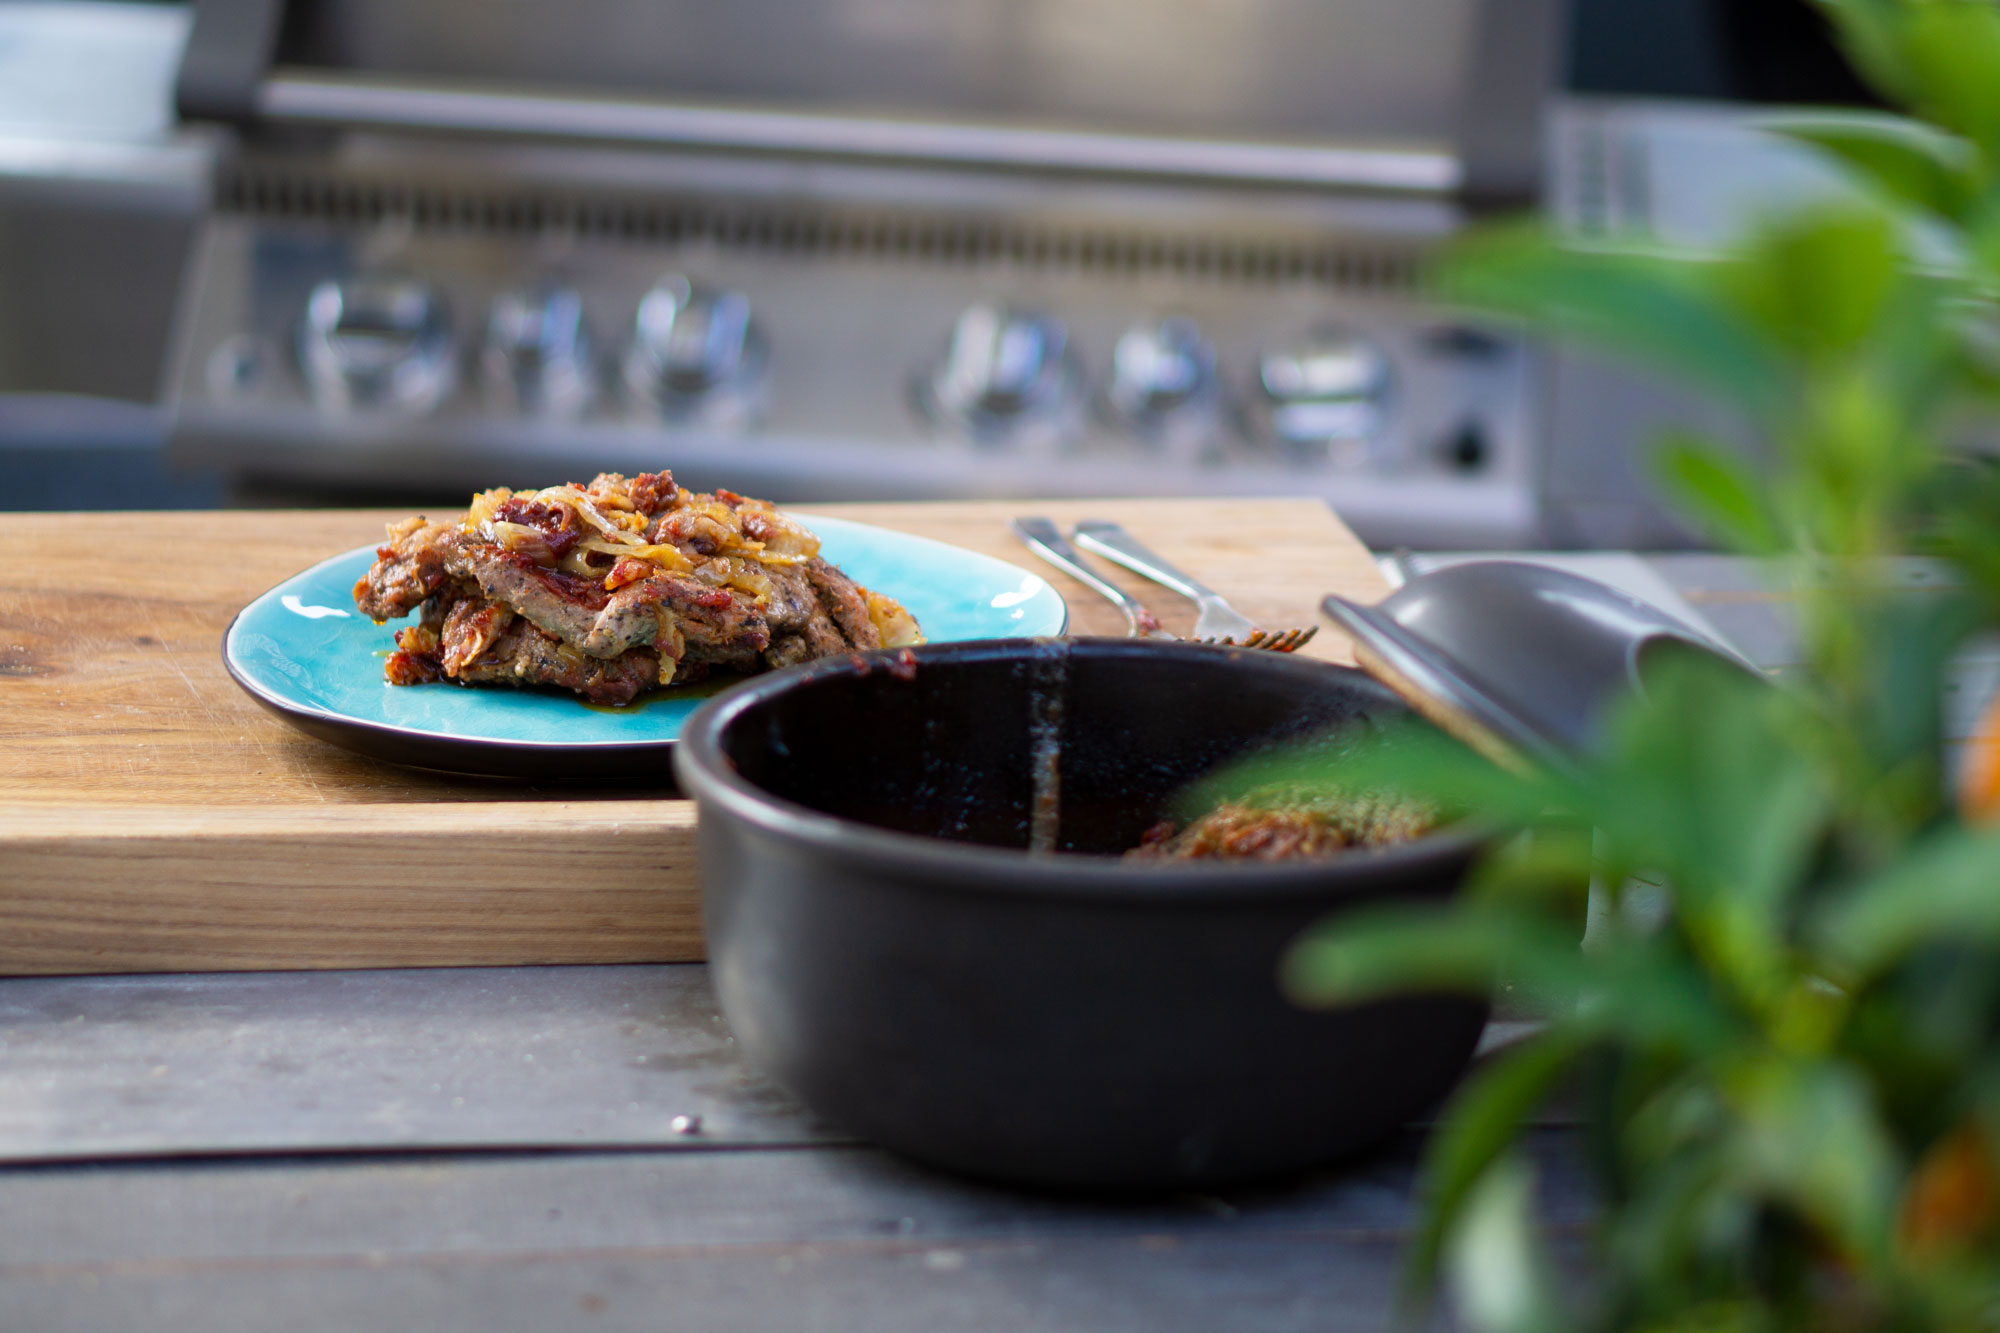 Sizzle Brothers Spareribs Vom Gasgrill : Schichtfleisch vom gasgrill sizzlebrothers schichtfleisch ganz